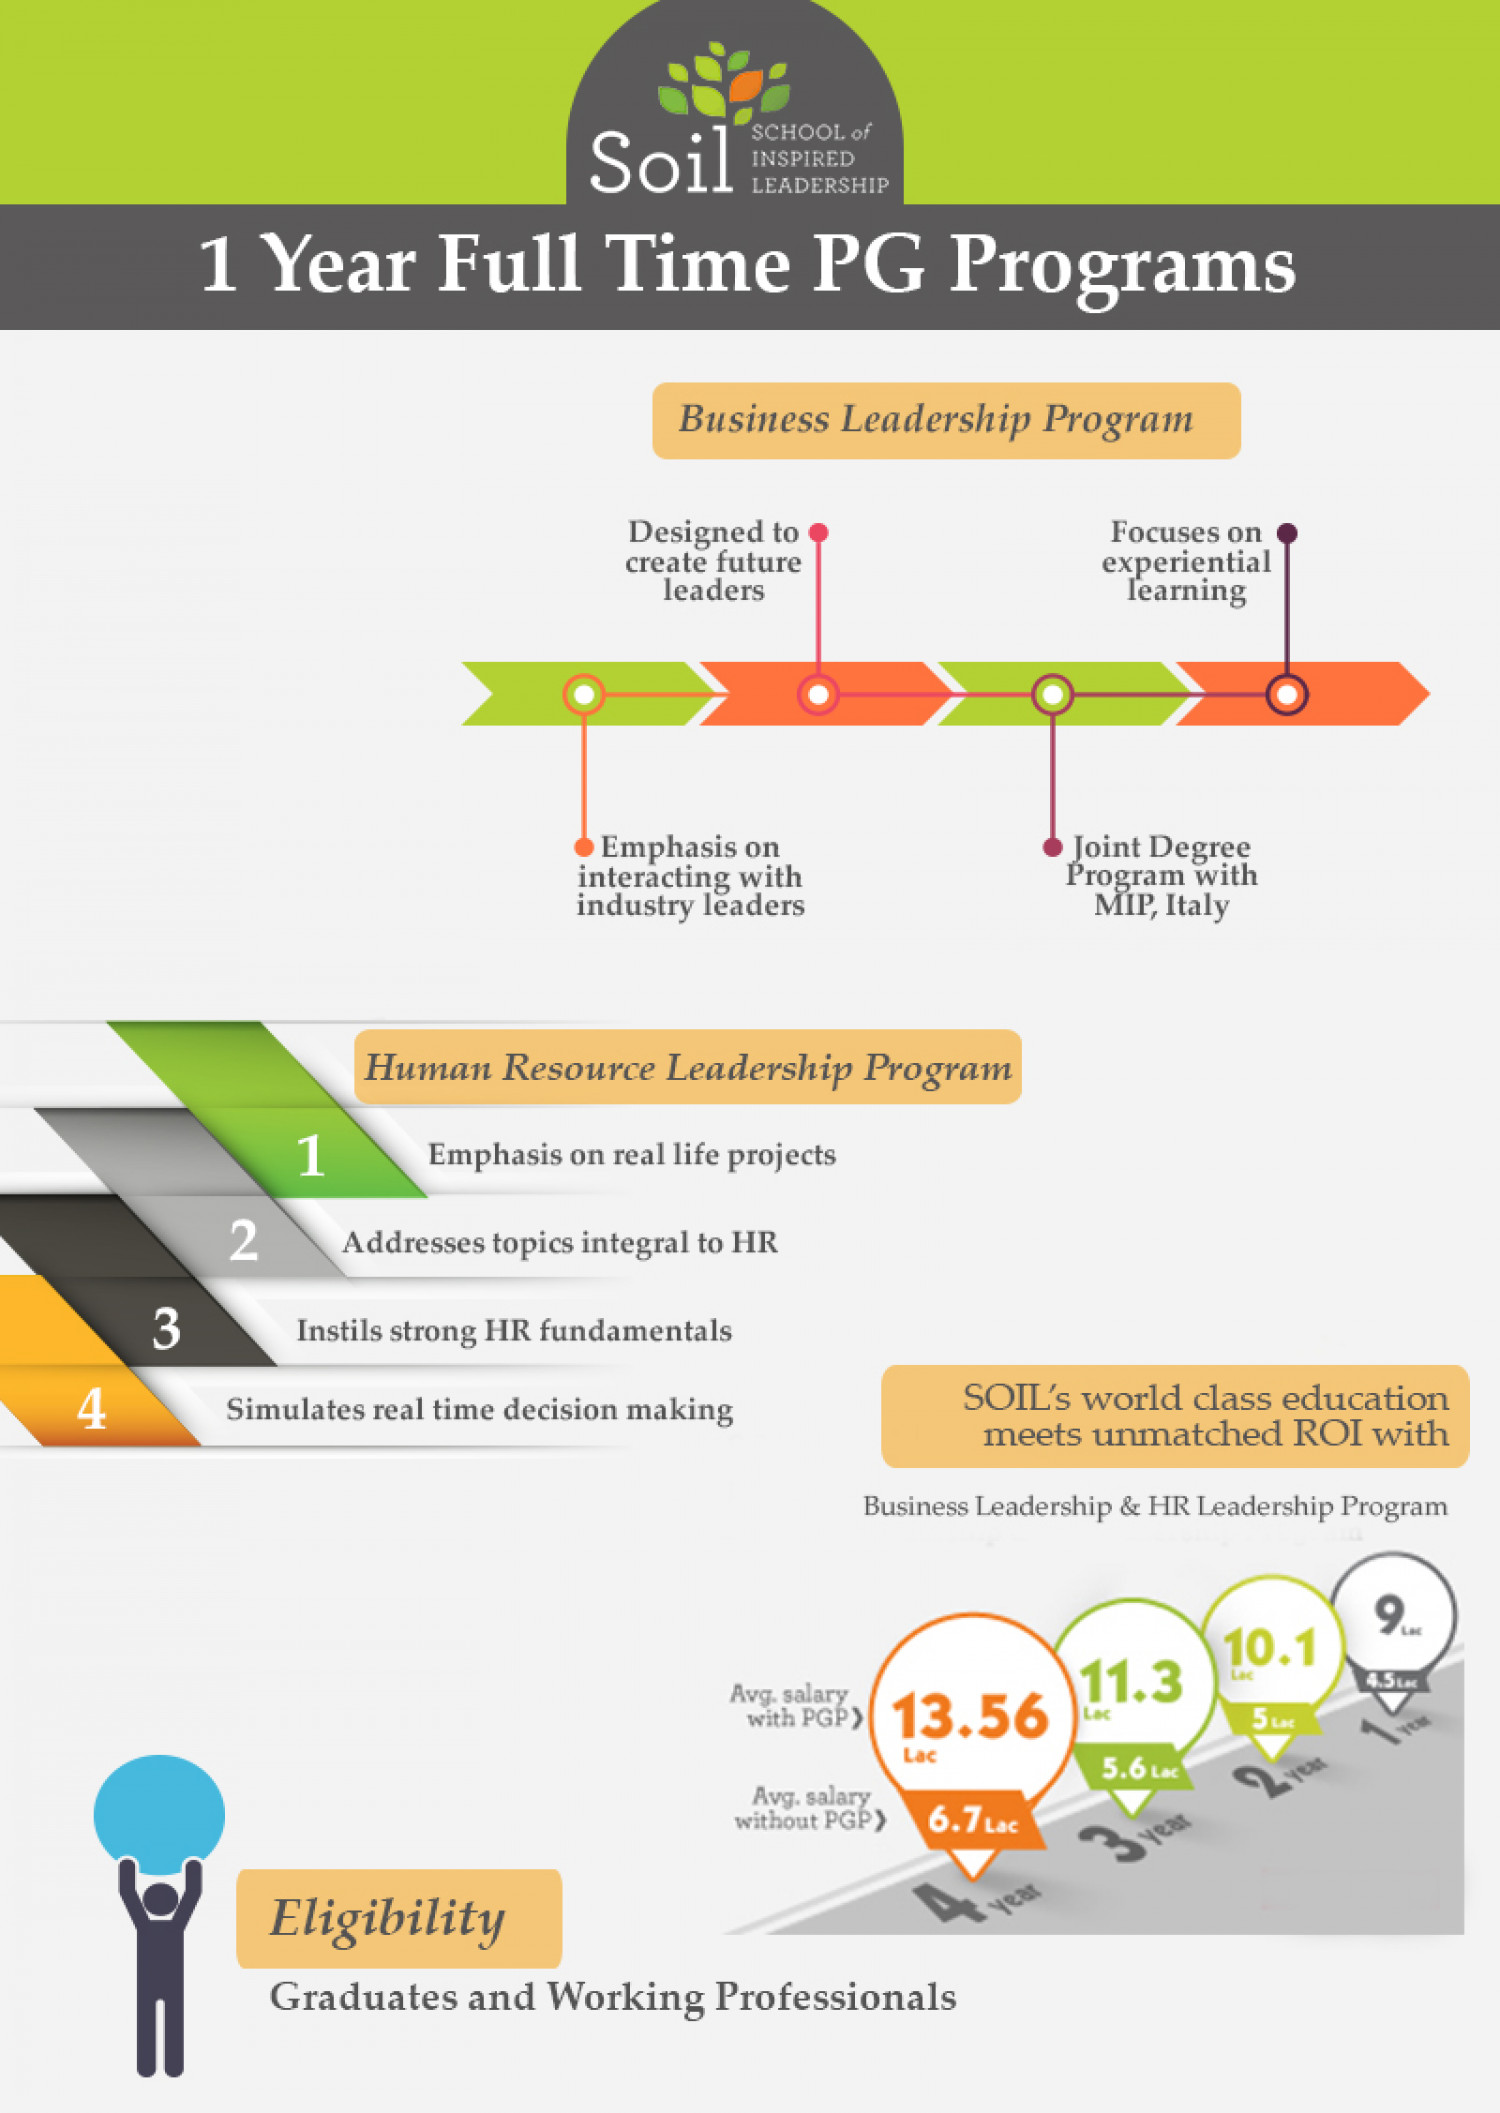 School of inspired leadership 1 year mba courses for Soil 1 year mba